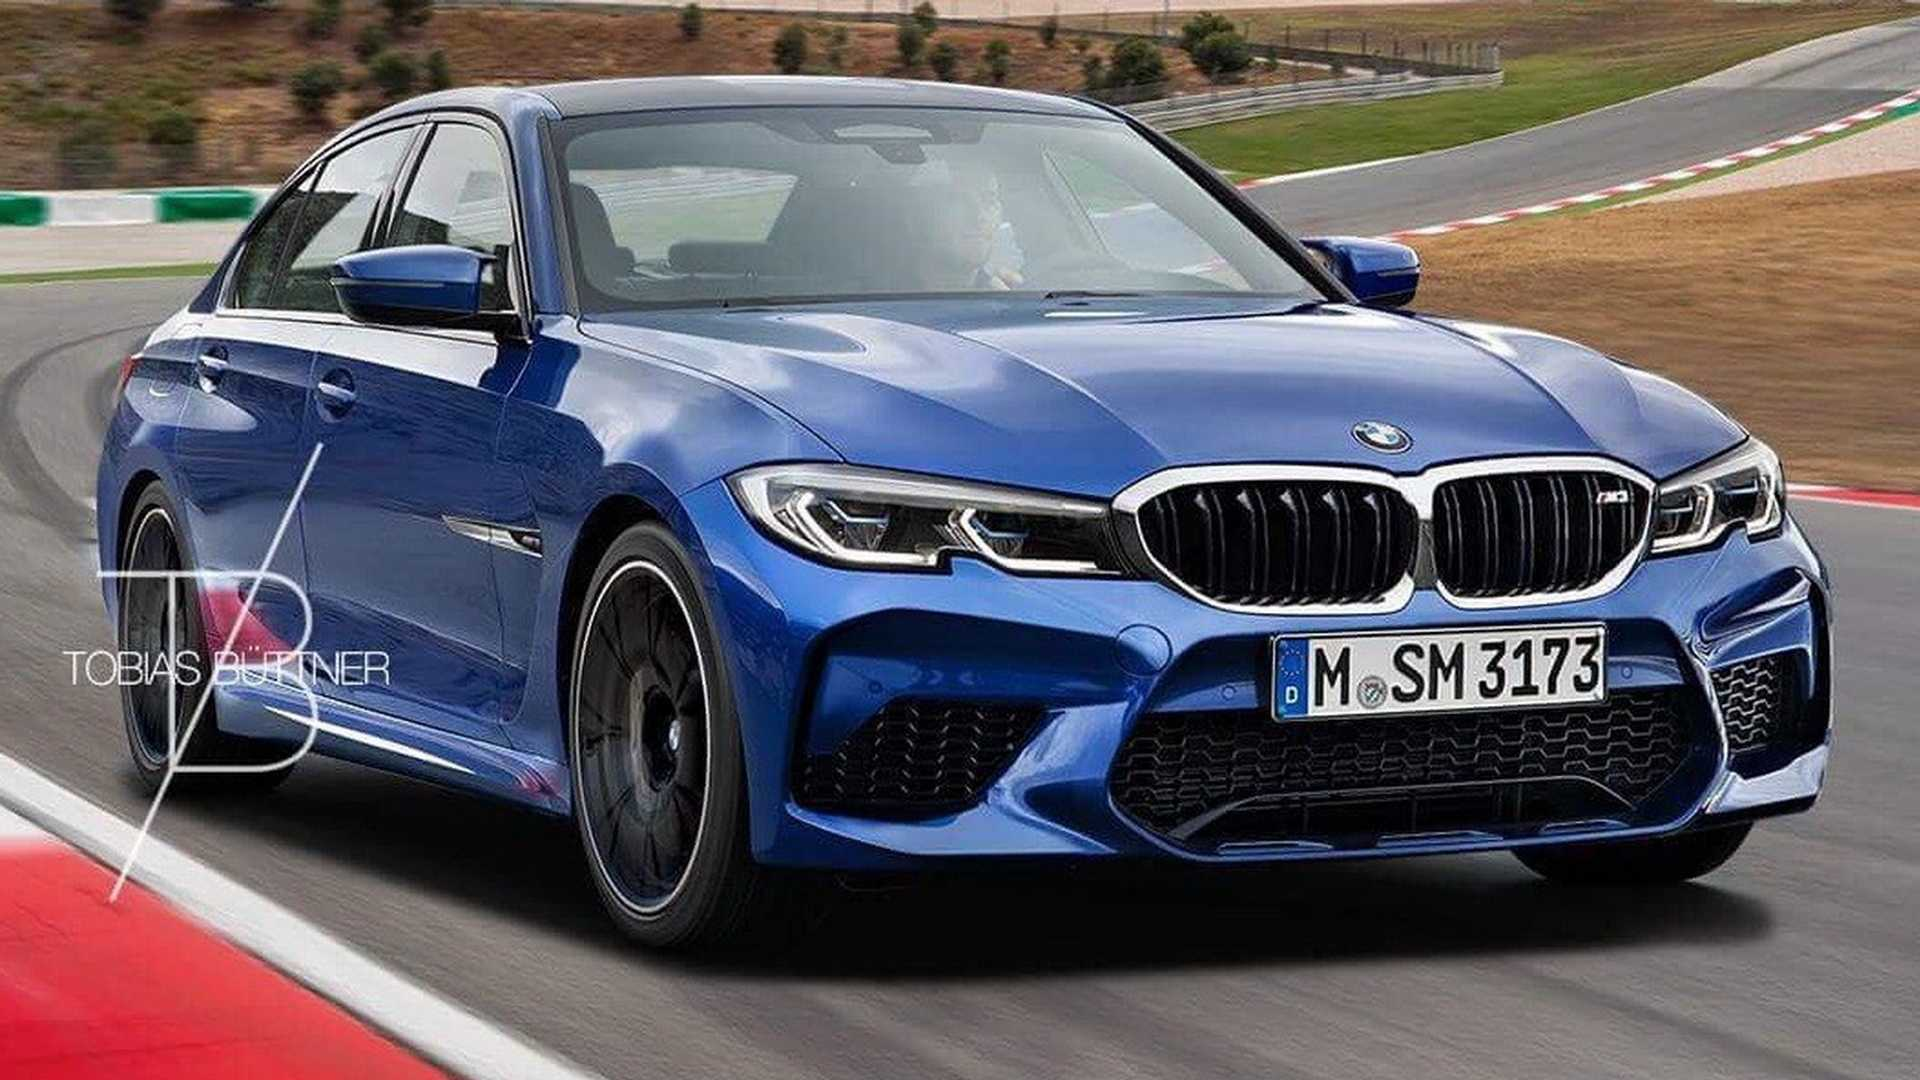 36 New 2020 Bmw M3 Price New Review by 2020 Bmw M3 Price